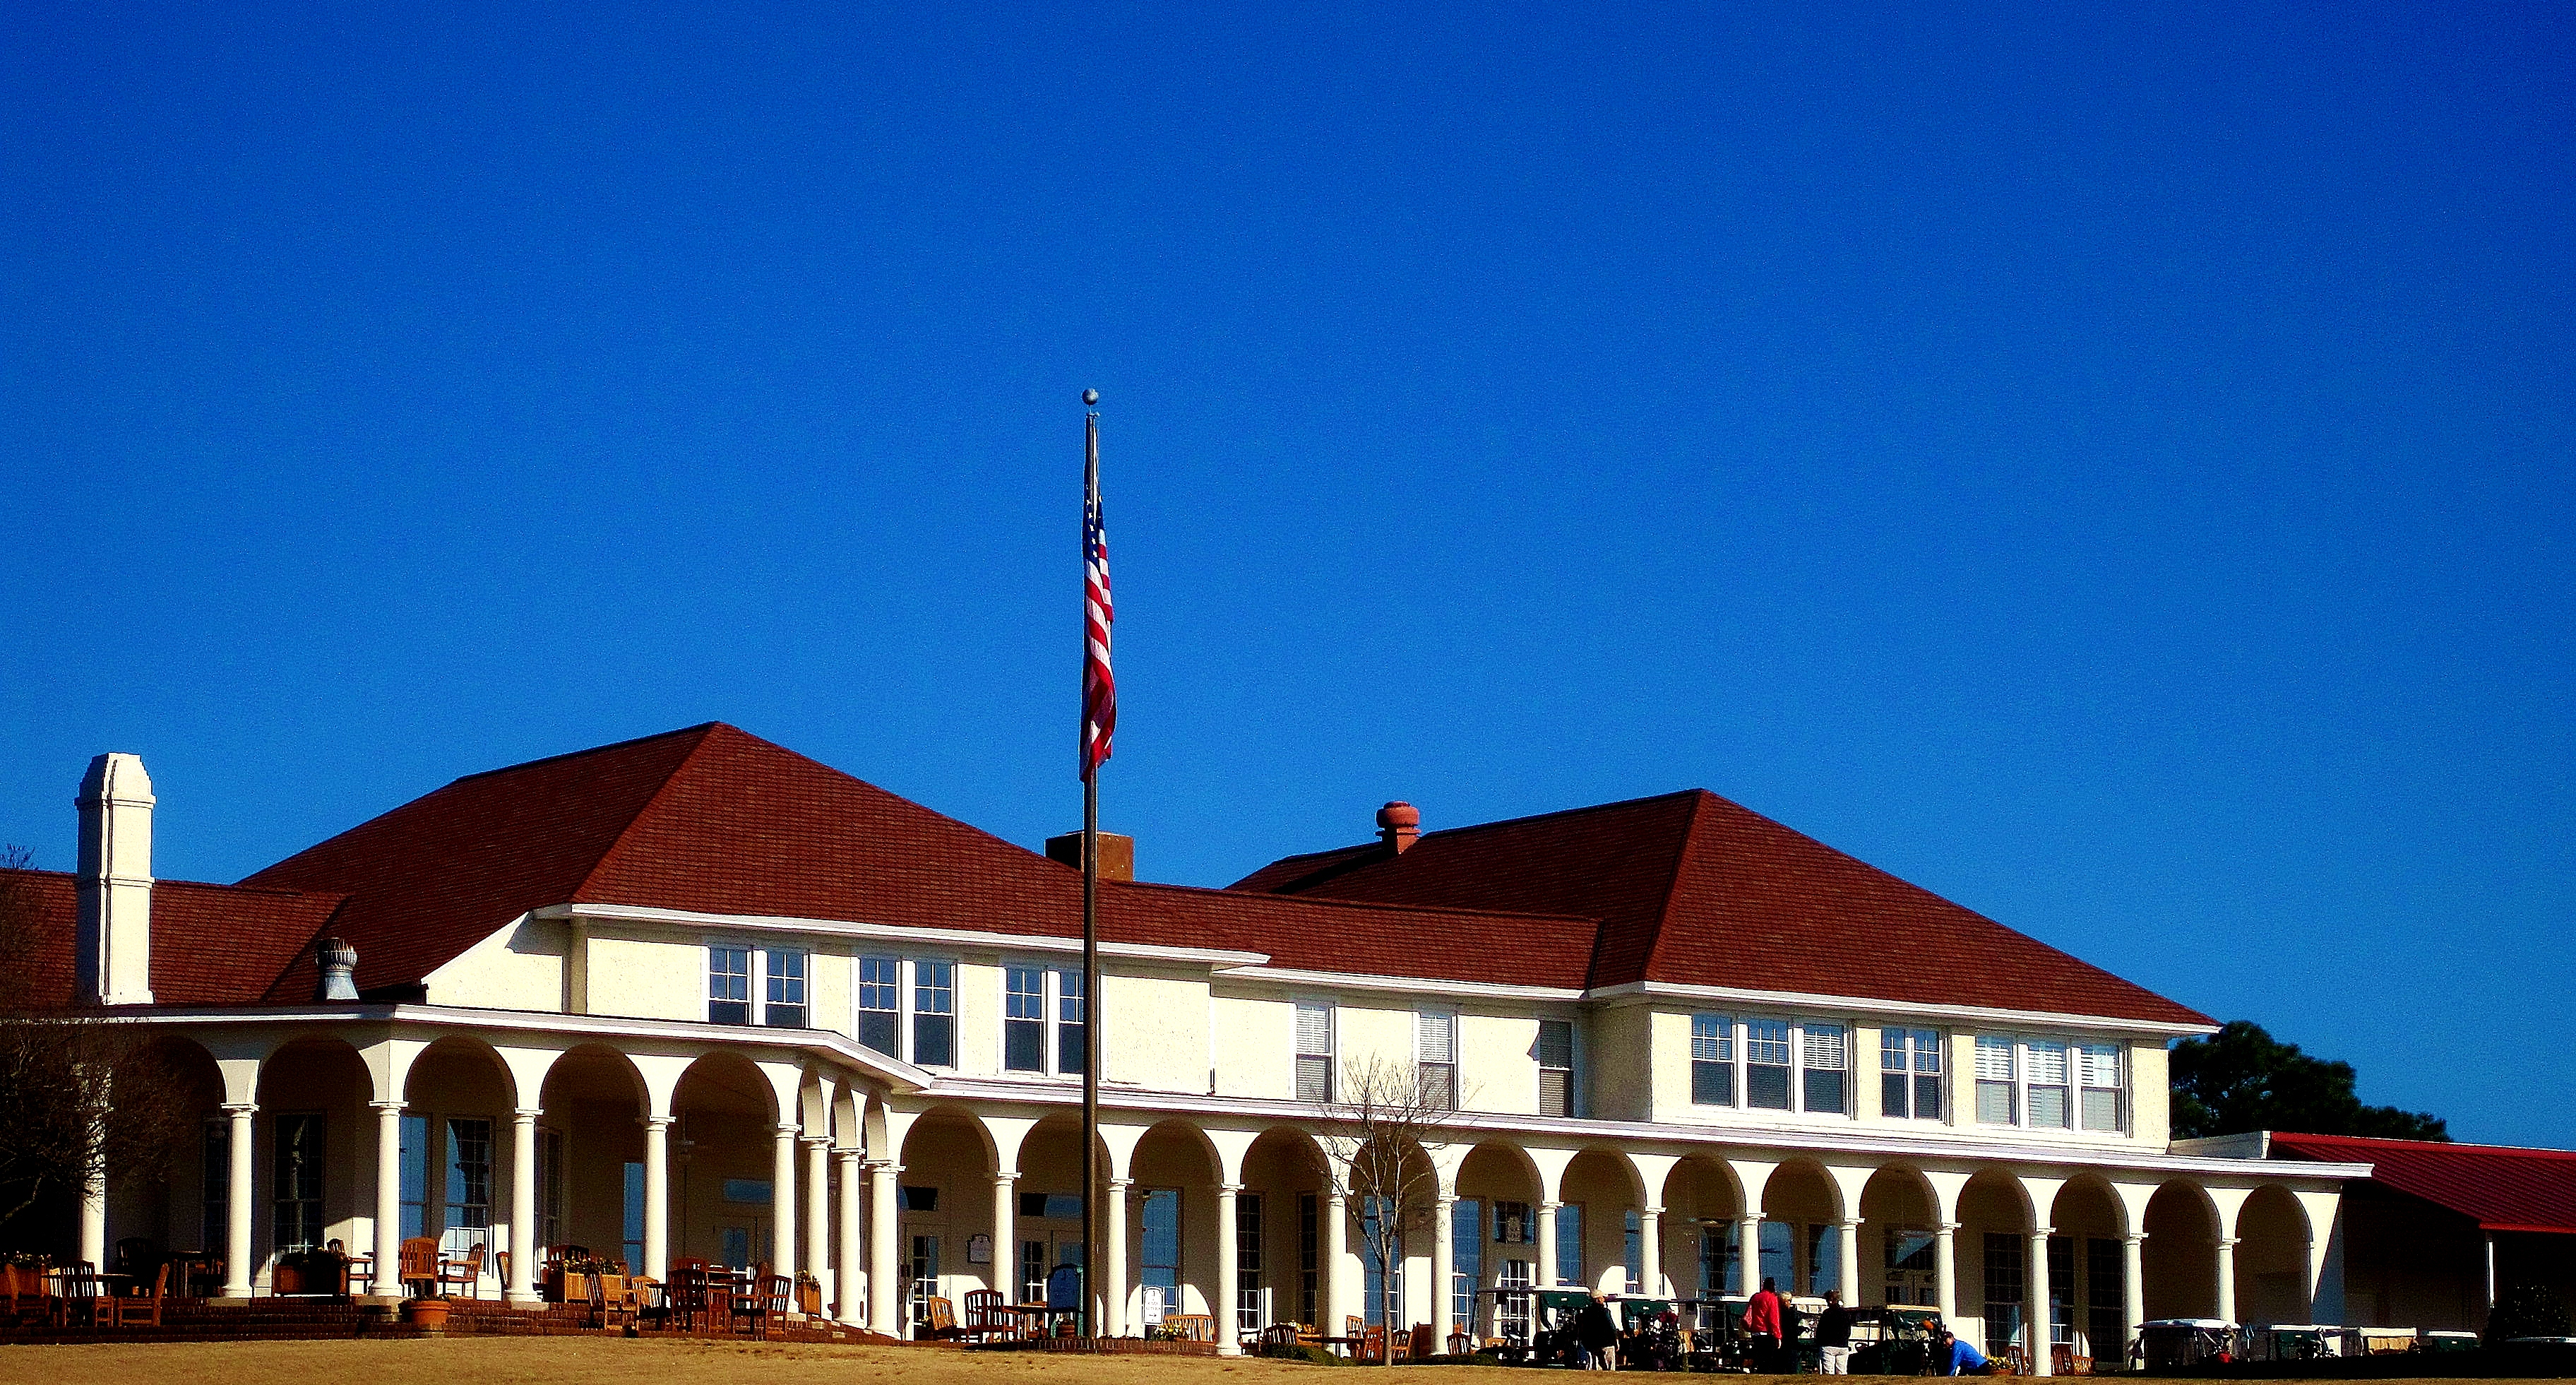 Pinehurst Resort Club